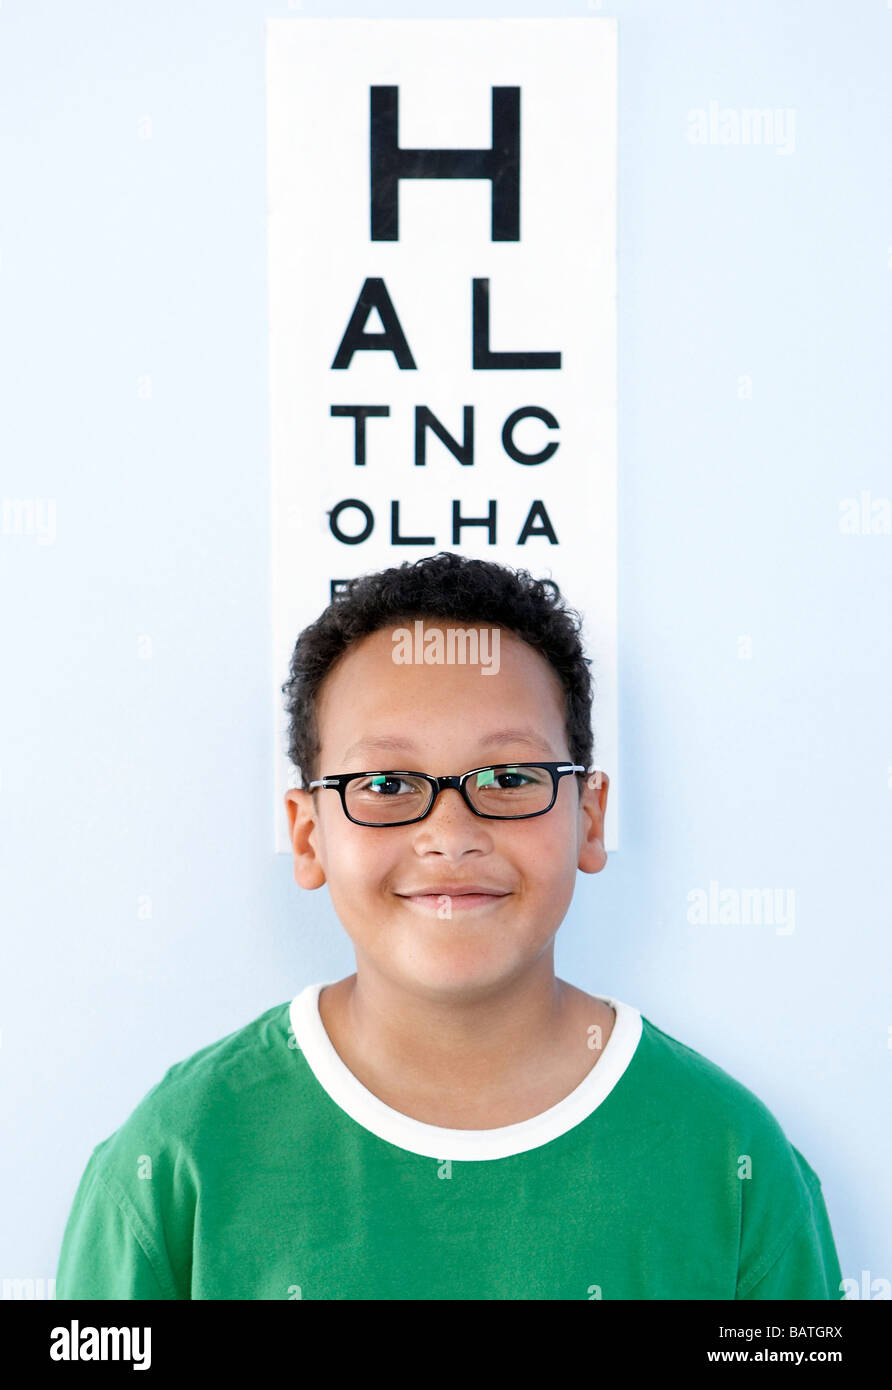 Eye examination. Boy wearing glasses standing under an eye chart. - Stock Image